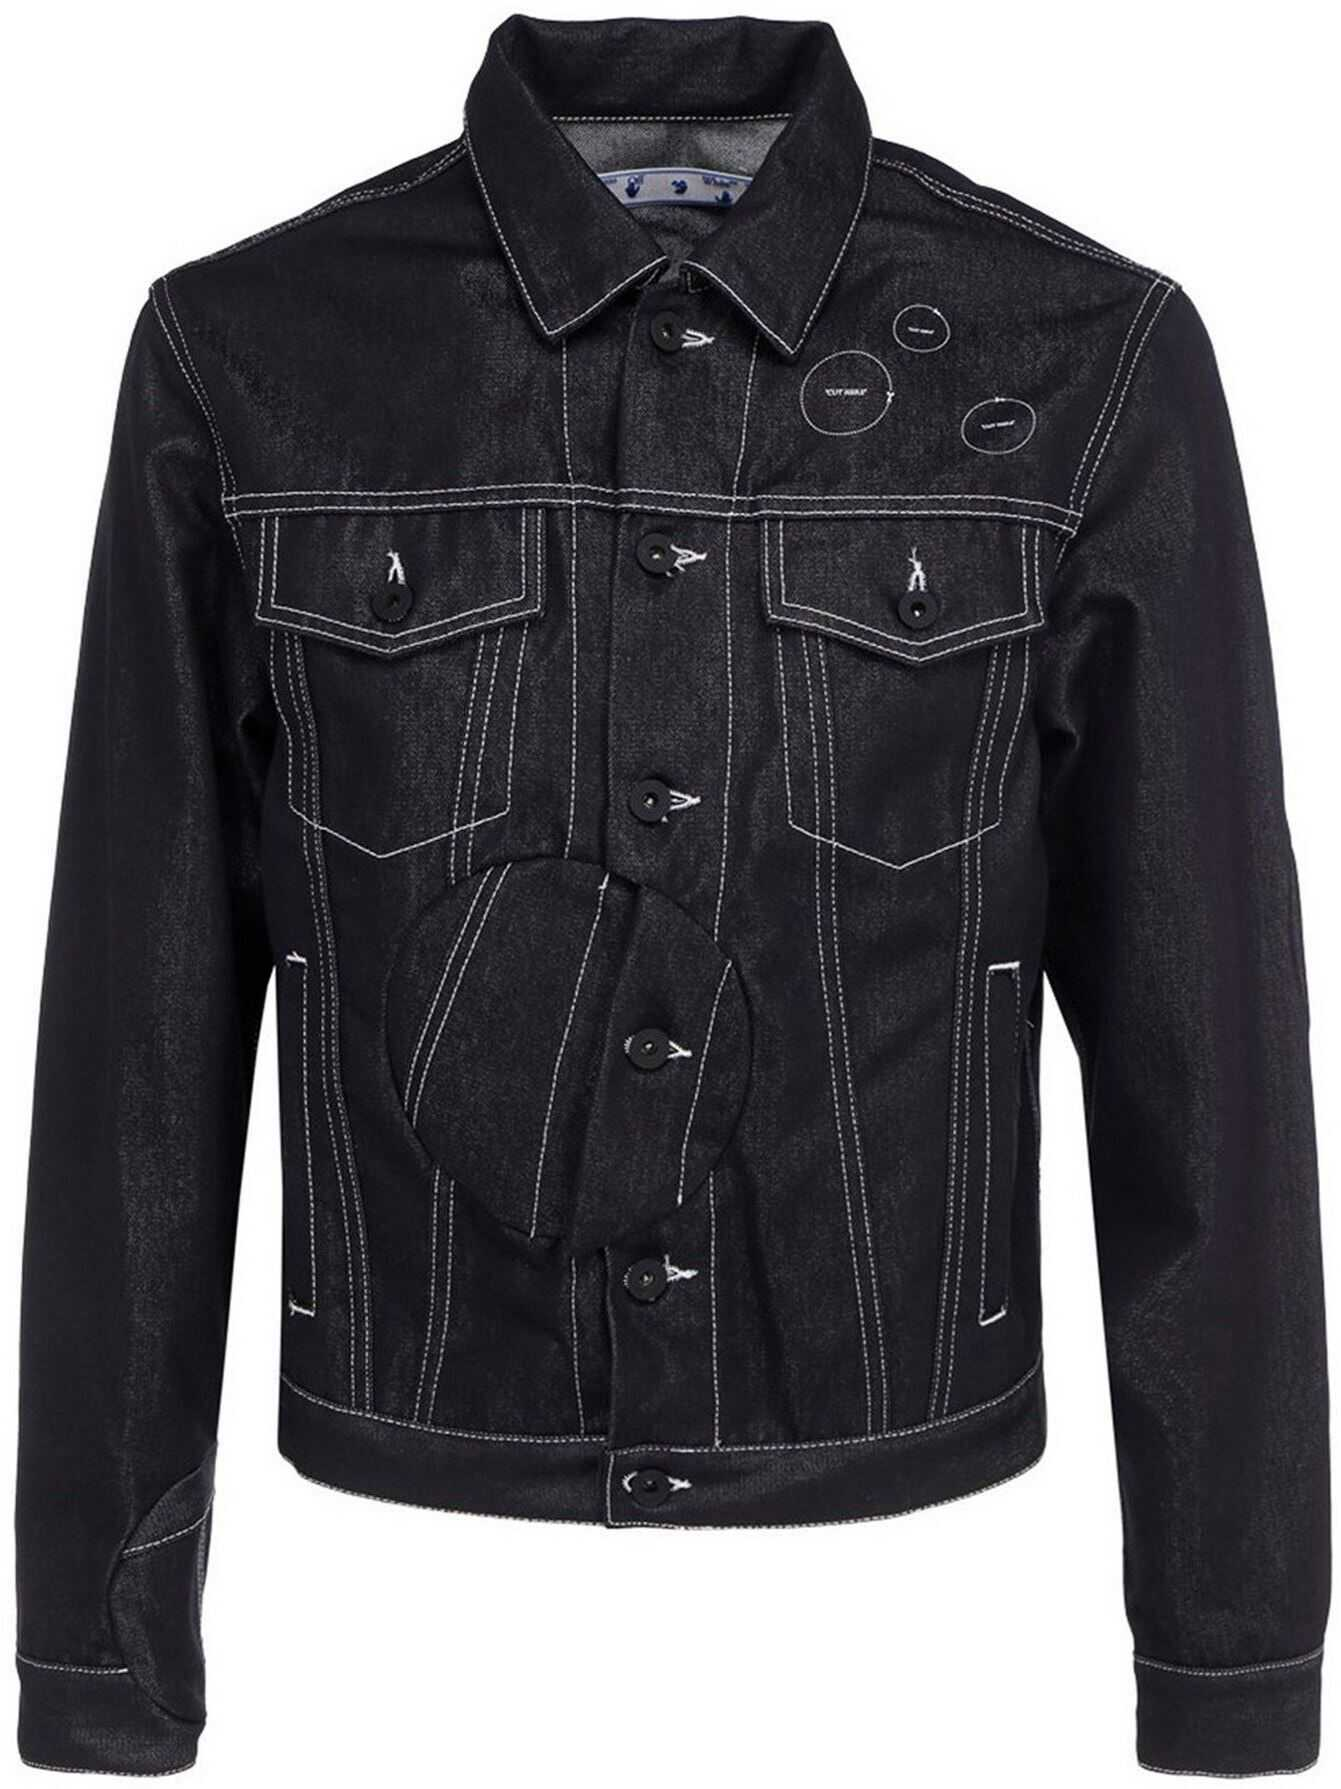 Off-White Arrow Twist Denim Jacket In Black Black imagine